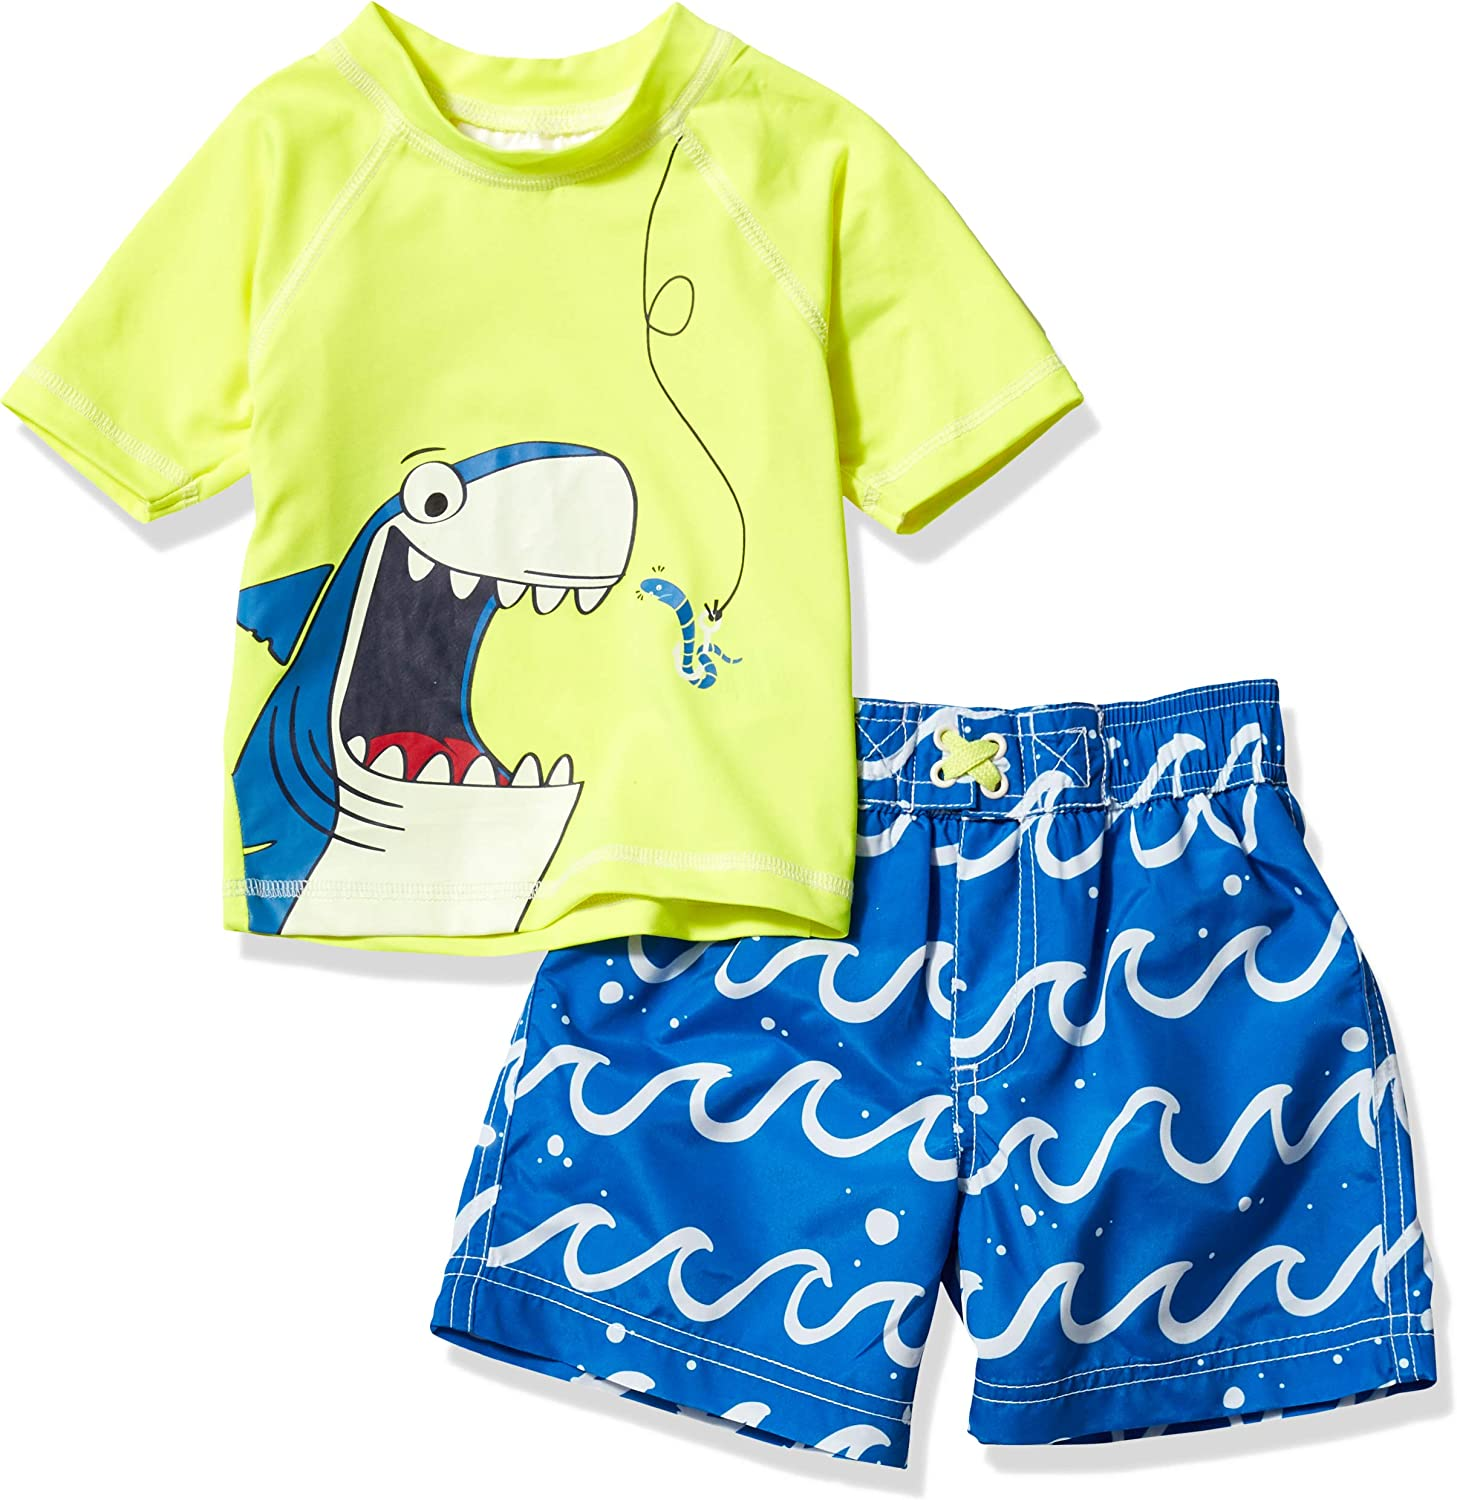 Wippette Boys Baby Two Piece Printed Rashguard Sets